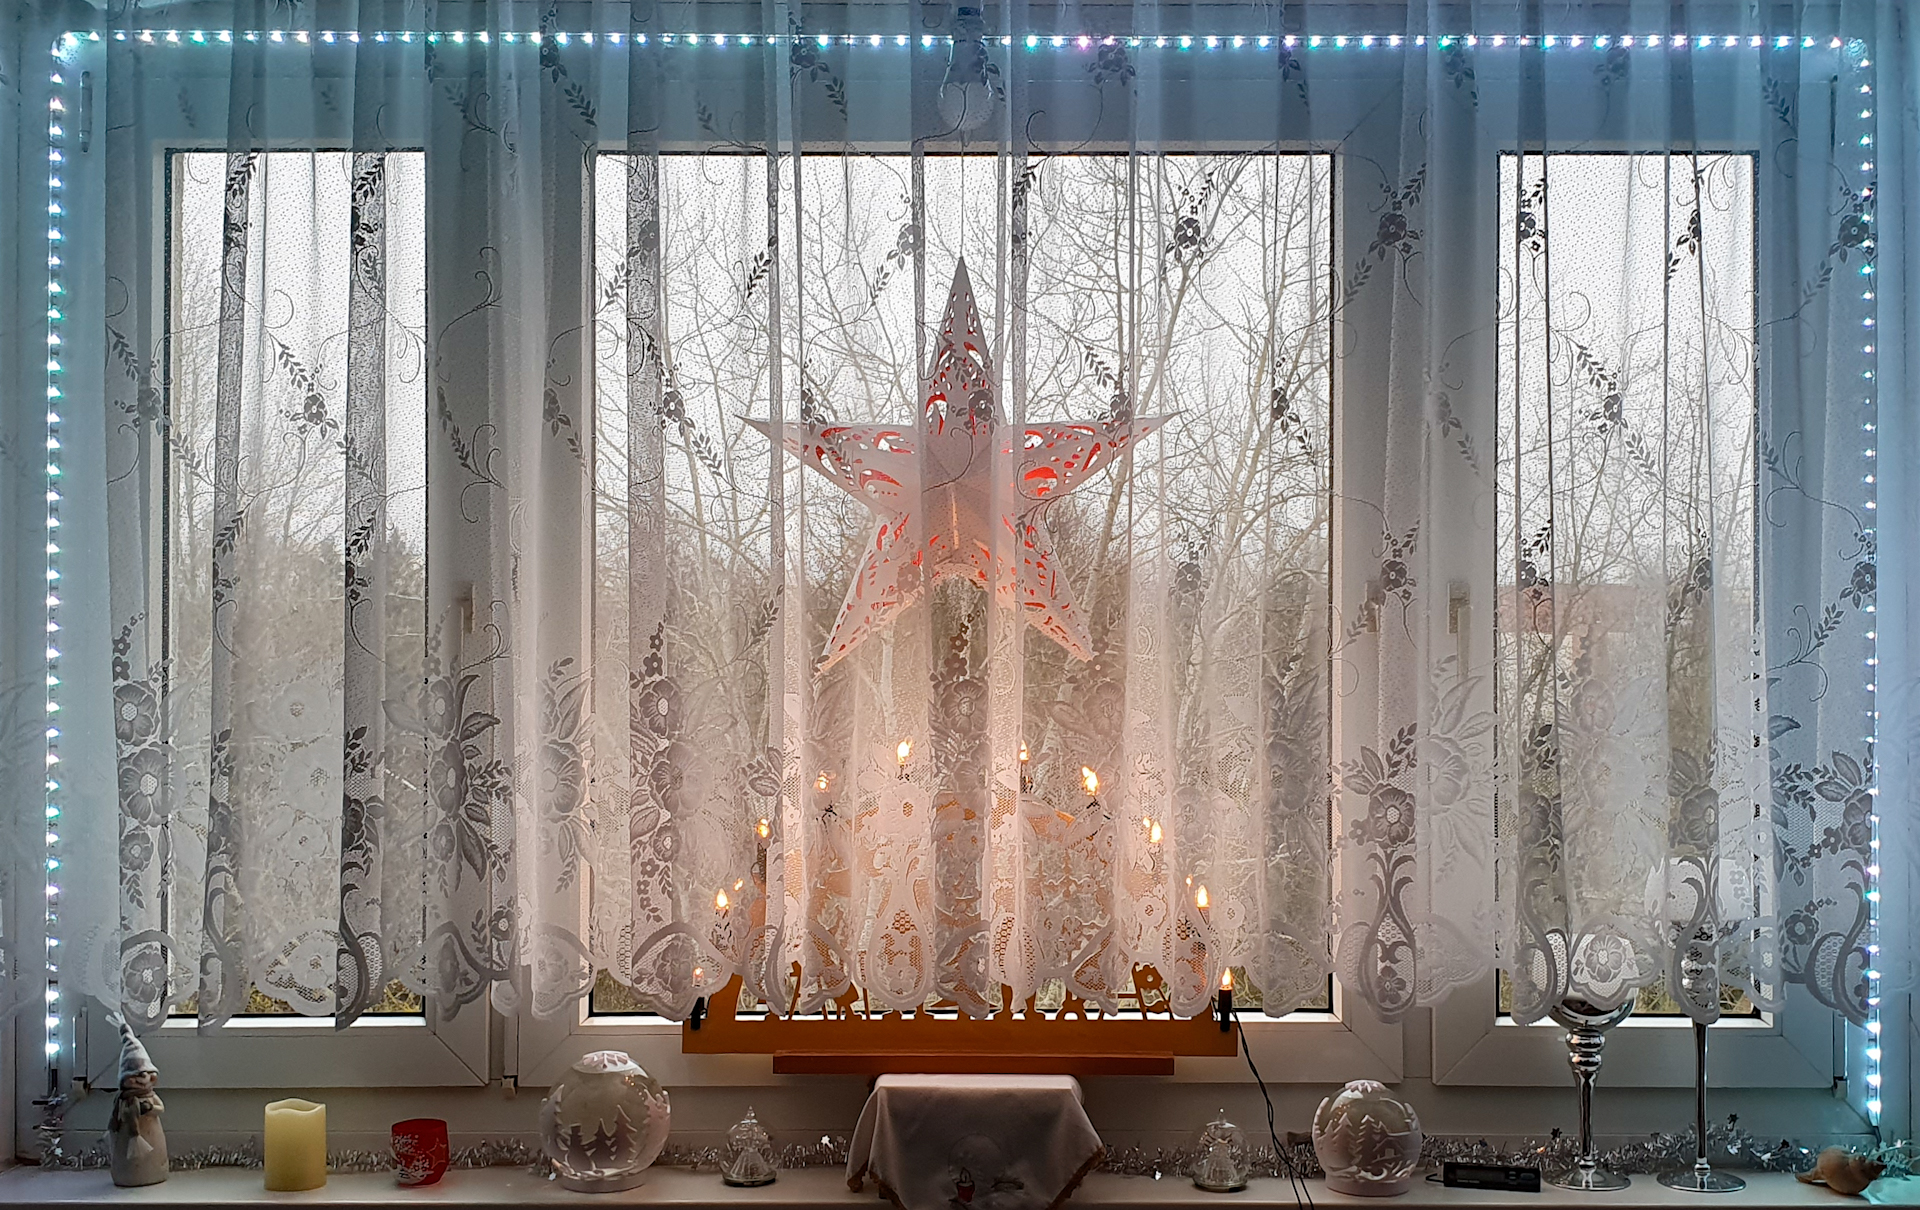 Adventsdeko am Fenster